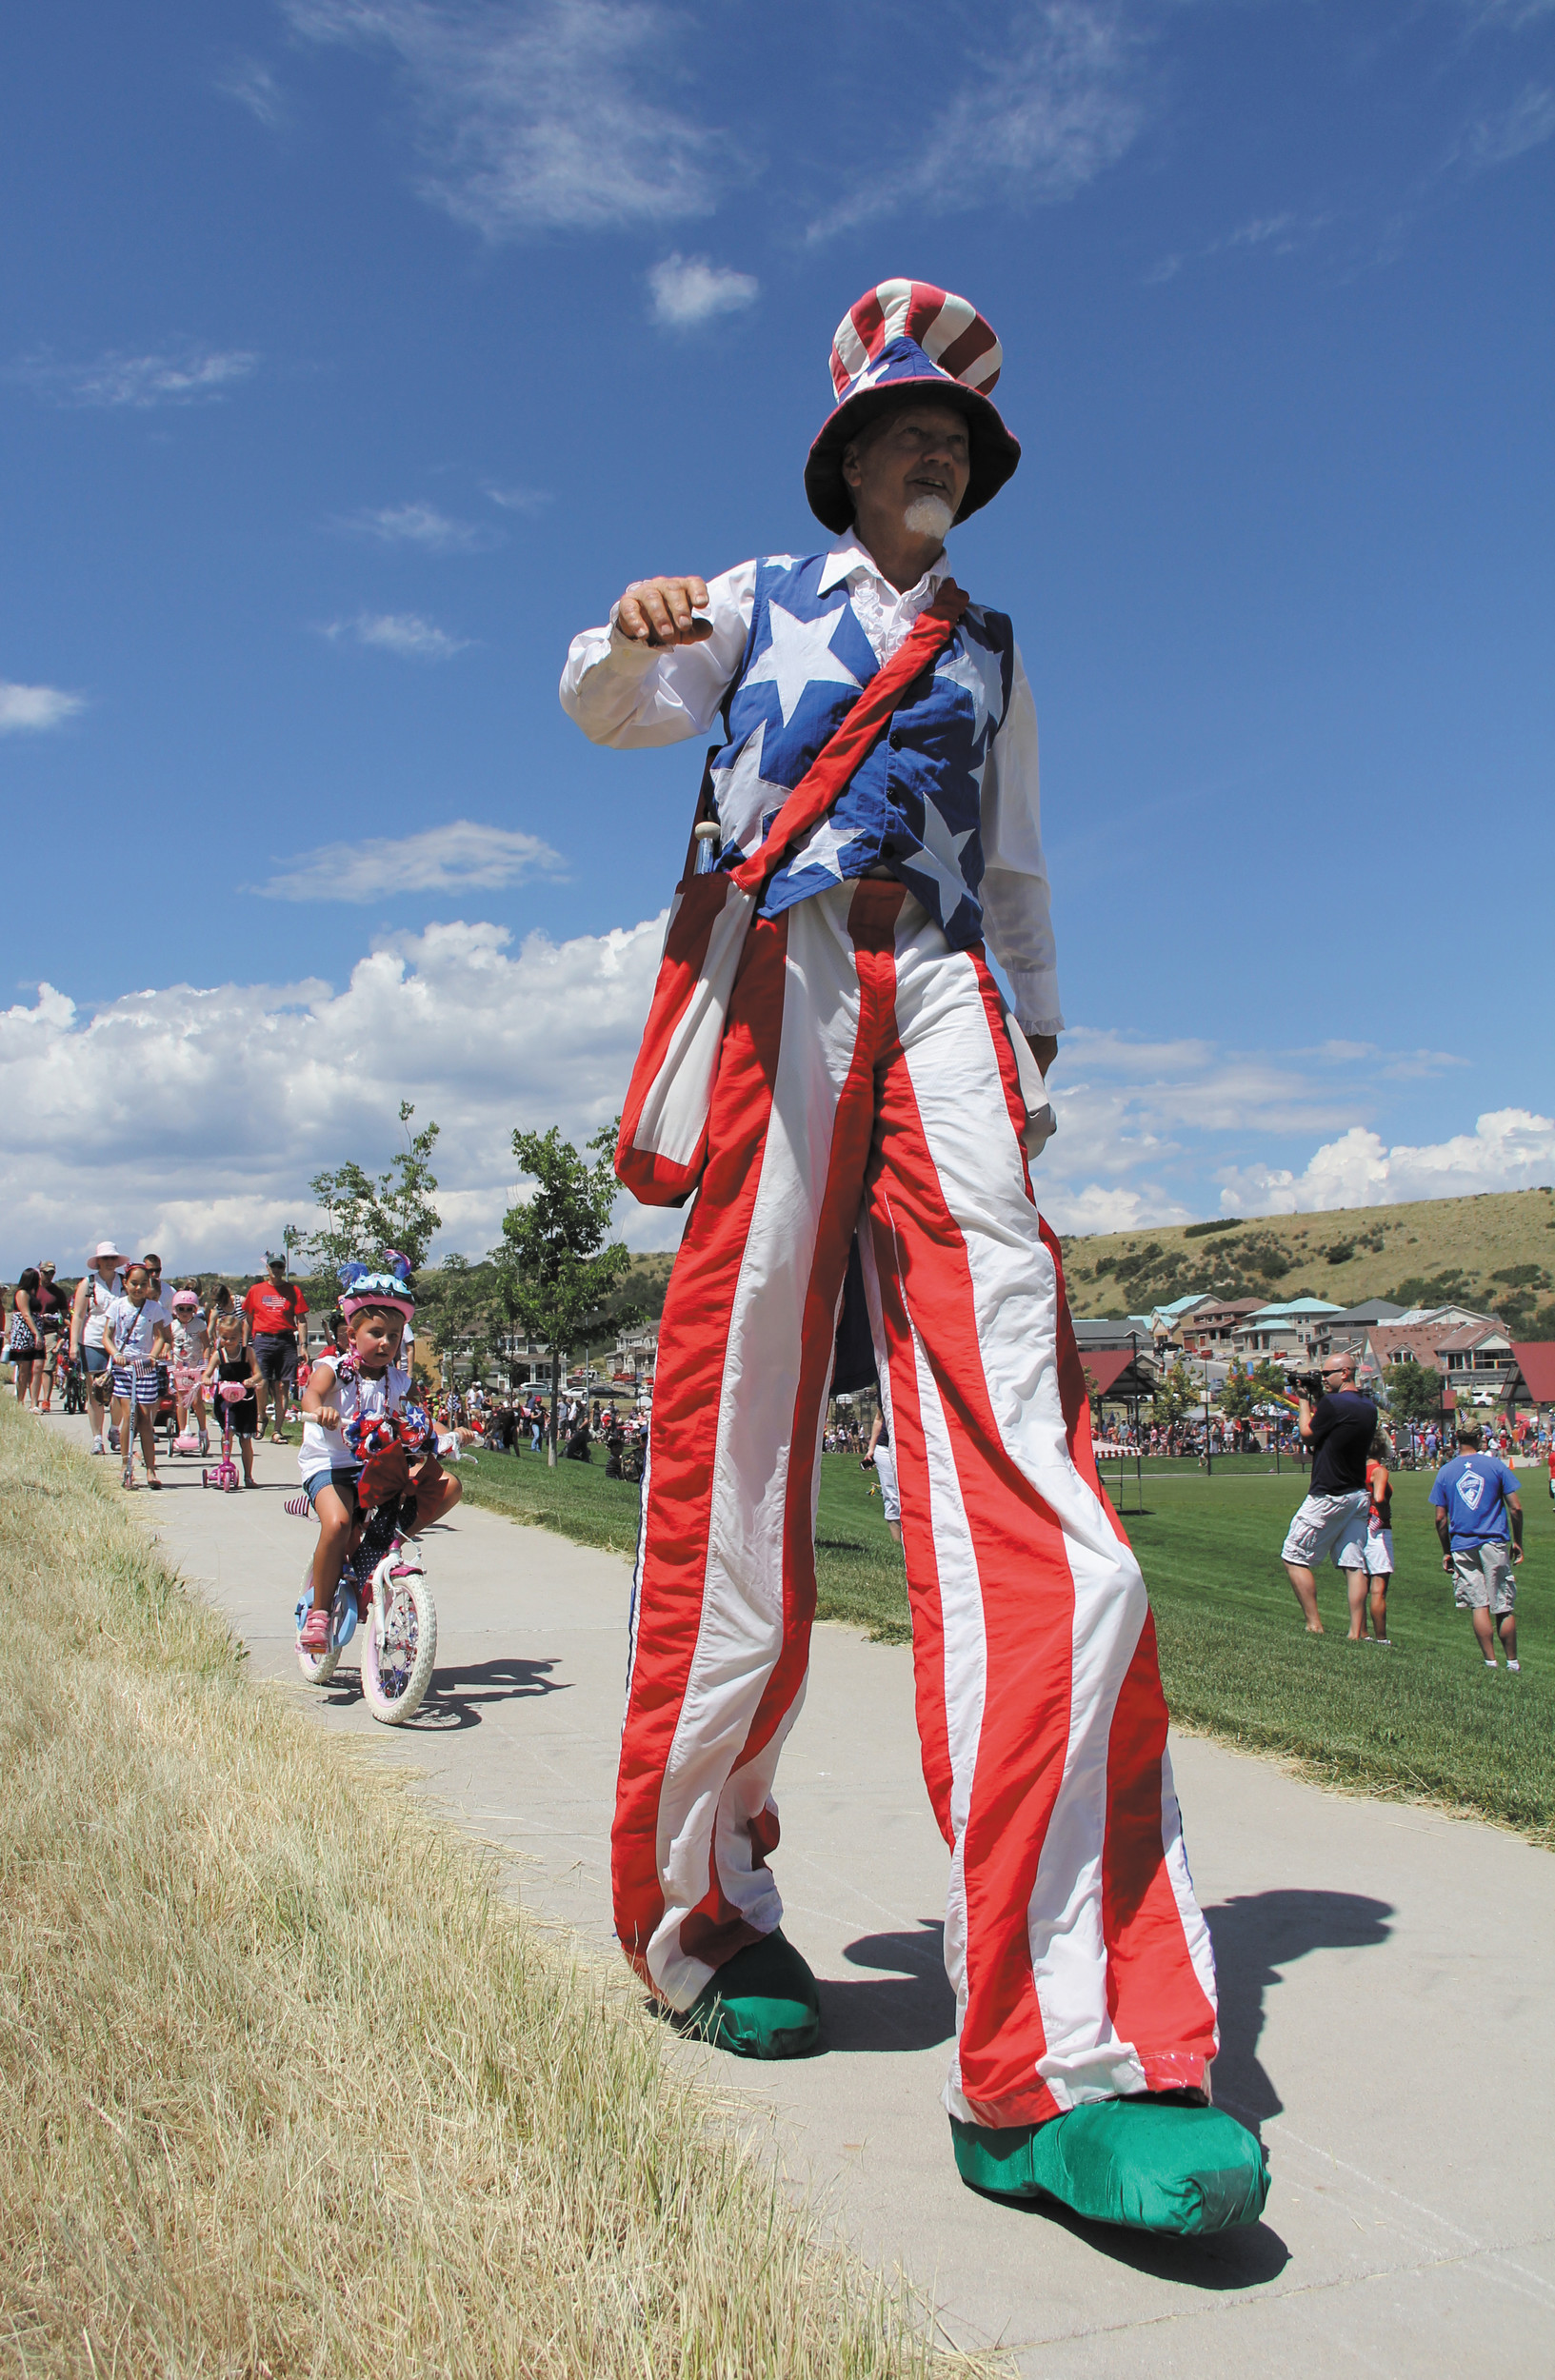 """Red and White, Blue Suede Shoes, I'm Uncle Sam, How do you do?"" ... Youngsters came out in droves to ride their bikes with Uncle Sam at the Meadows annual Fourth of July Children's Bike Parade in Castle Rock."